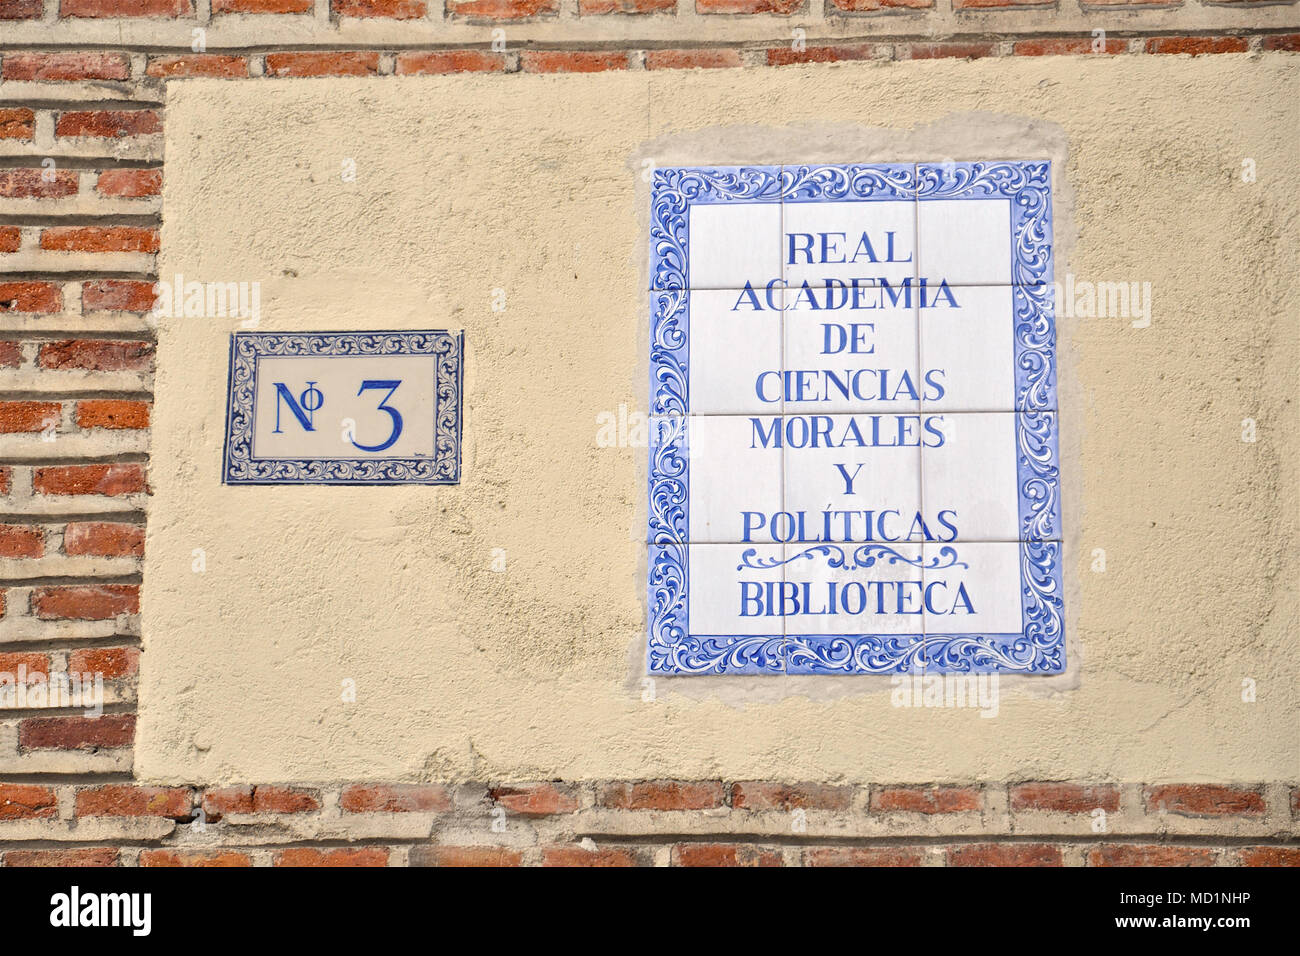 Tiles with building name and street number of the Royal Academy of Moral and Political Sciences in the Plaza de la Villa, Madrid (Spain) - Stock Image